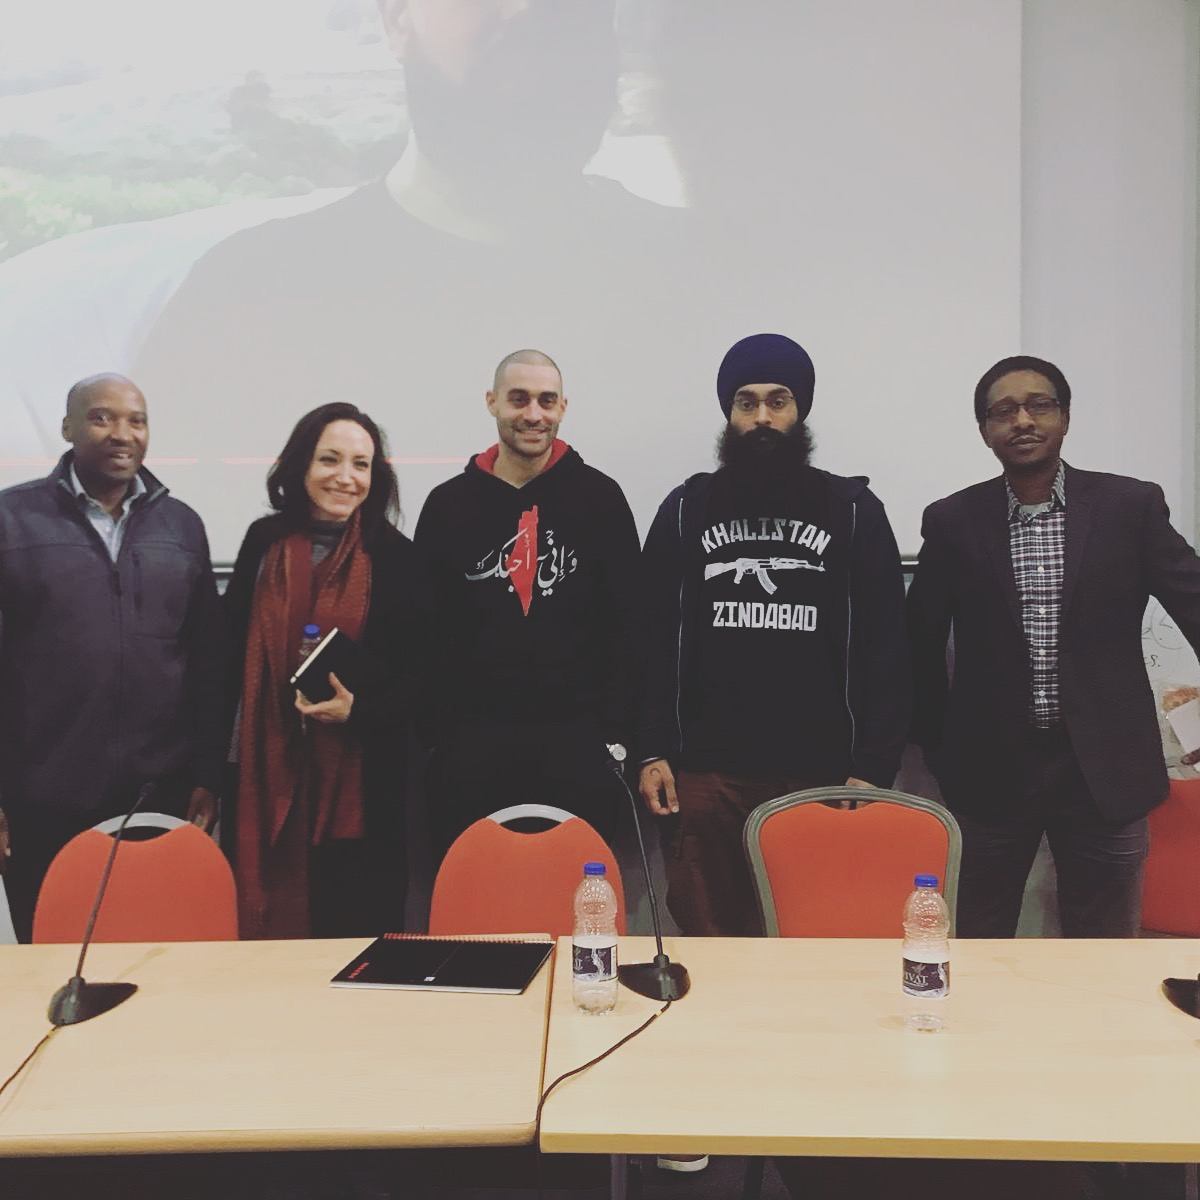 from left to right:  Julius Mbaluto  - Founder and editor of Informer East Africa (UK-based diaspora newspaper) who covered the Mau Mau case in London.  Olivia Windham Stewart  - Founder of The Museum of British Colonialism.  Lowkey  - Rapper and activist.  Shamsher Singh  - co-founder of nsyf, sikh activist and ally of dom.  Dr Chege Githiora  -senior Lecturer in Swahili at SOAS and Gikuyu translator during the Mau Mau case in London.